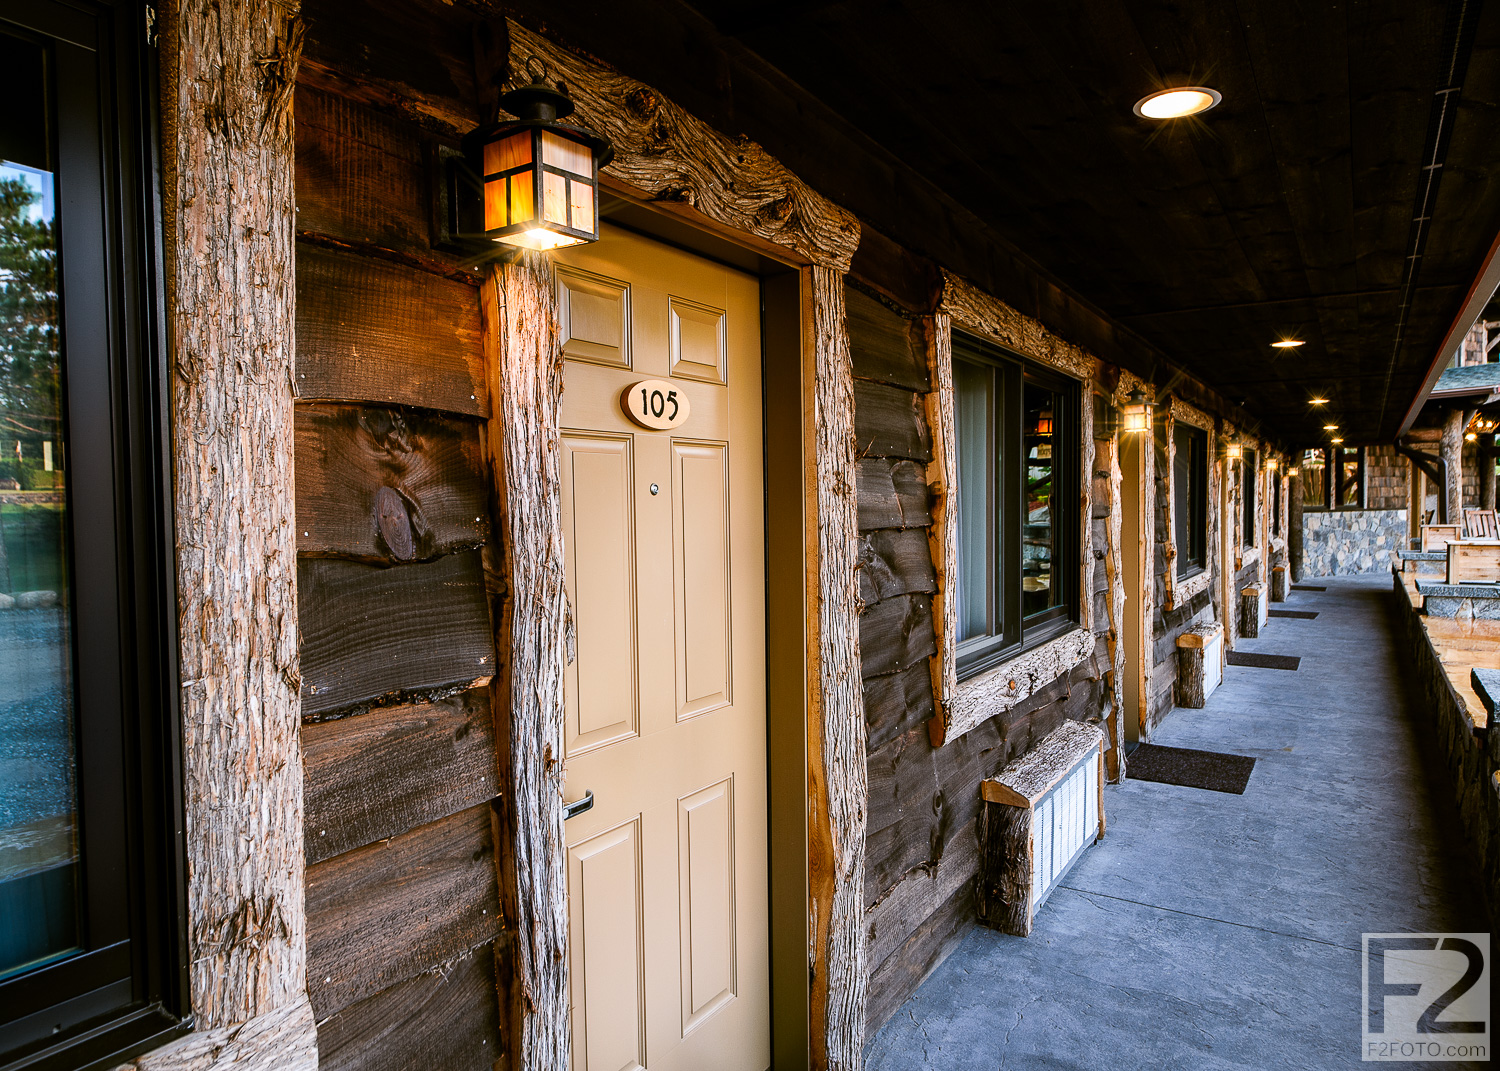 Adk-Spruce-Lodge-Facebook-44.jpg